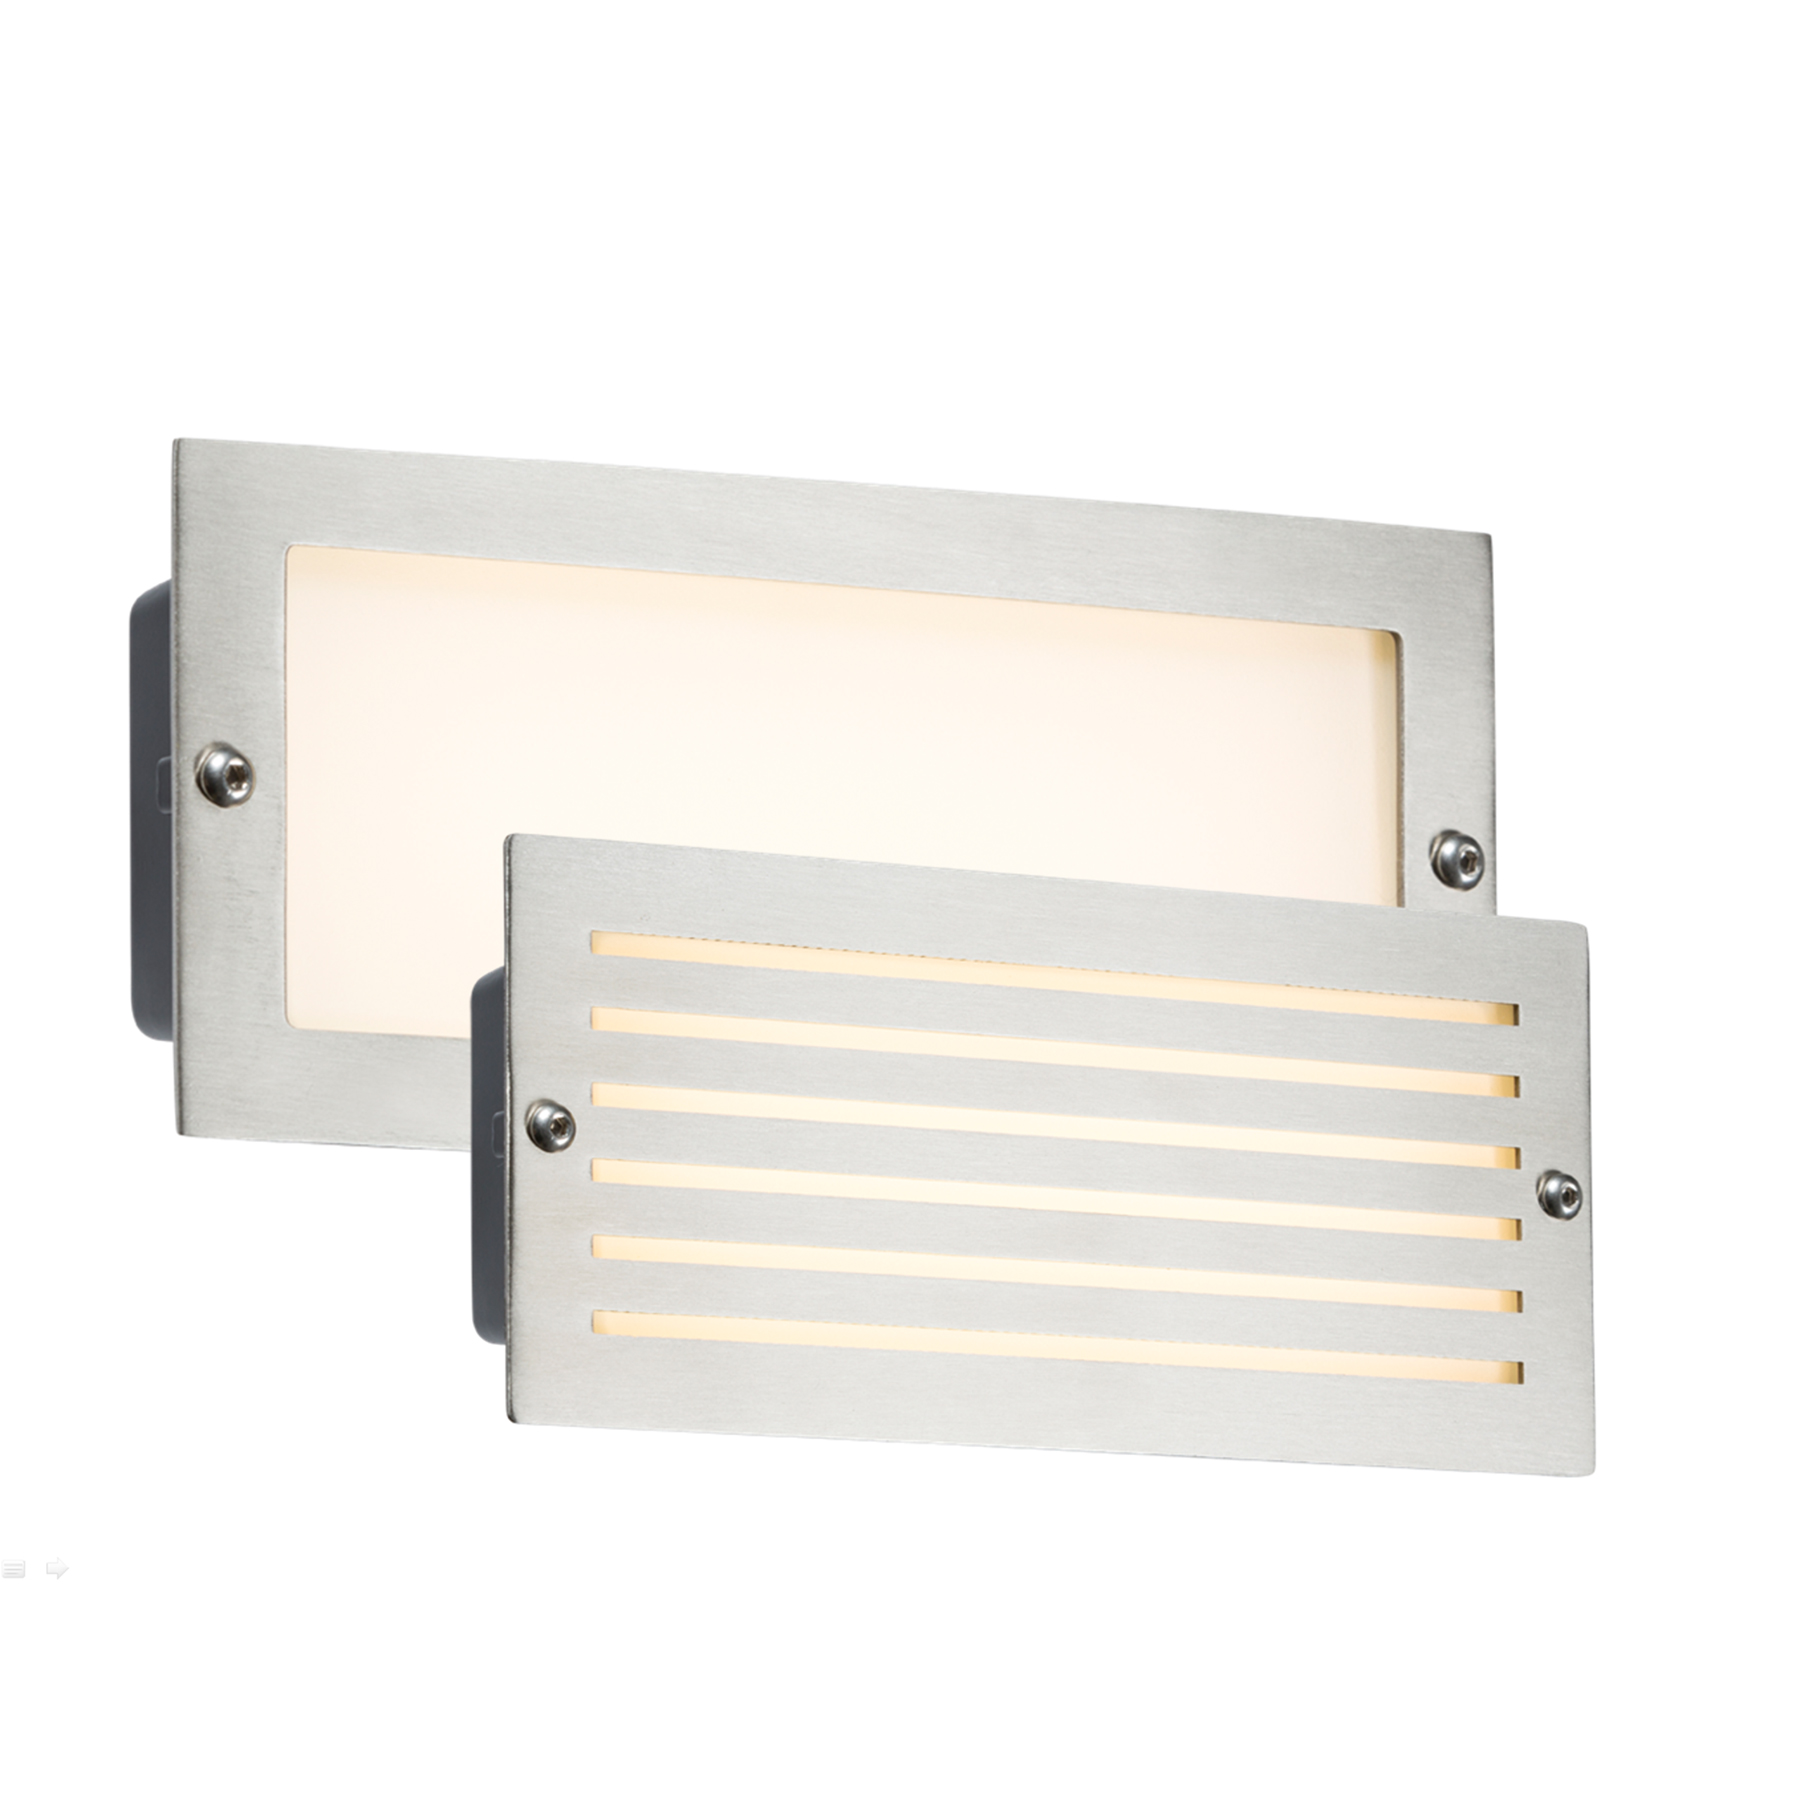 Knightsbridge LED Bricklight Outdoor Brick Light White Brushed Steel Low Ener